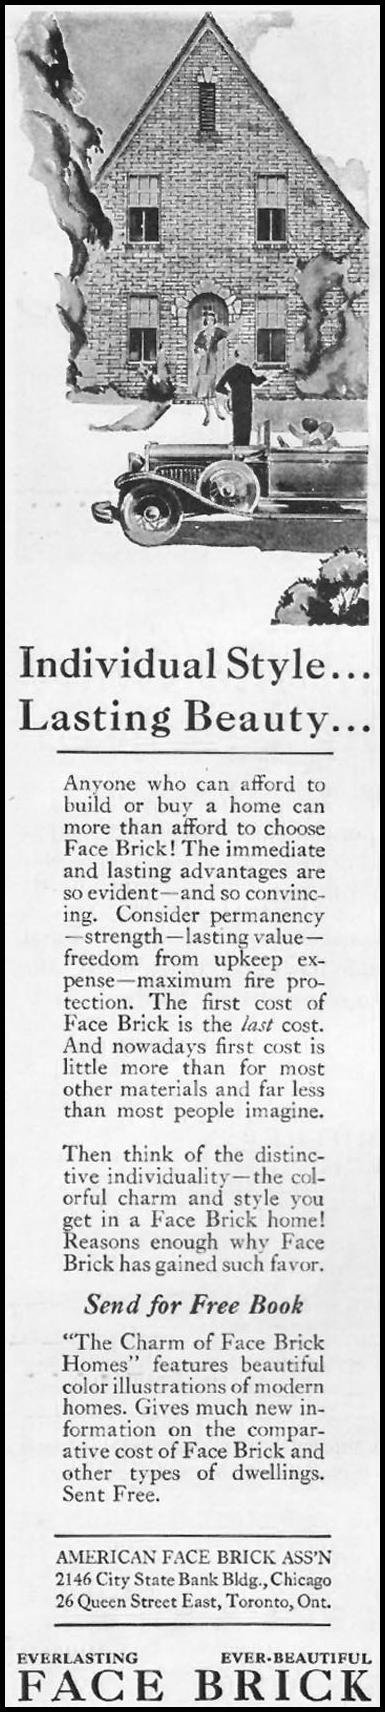 FACE BRICK